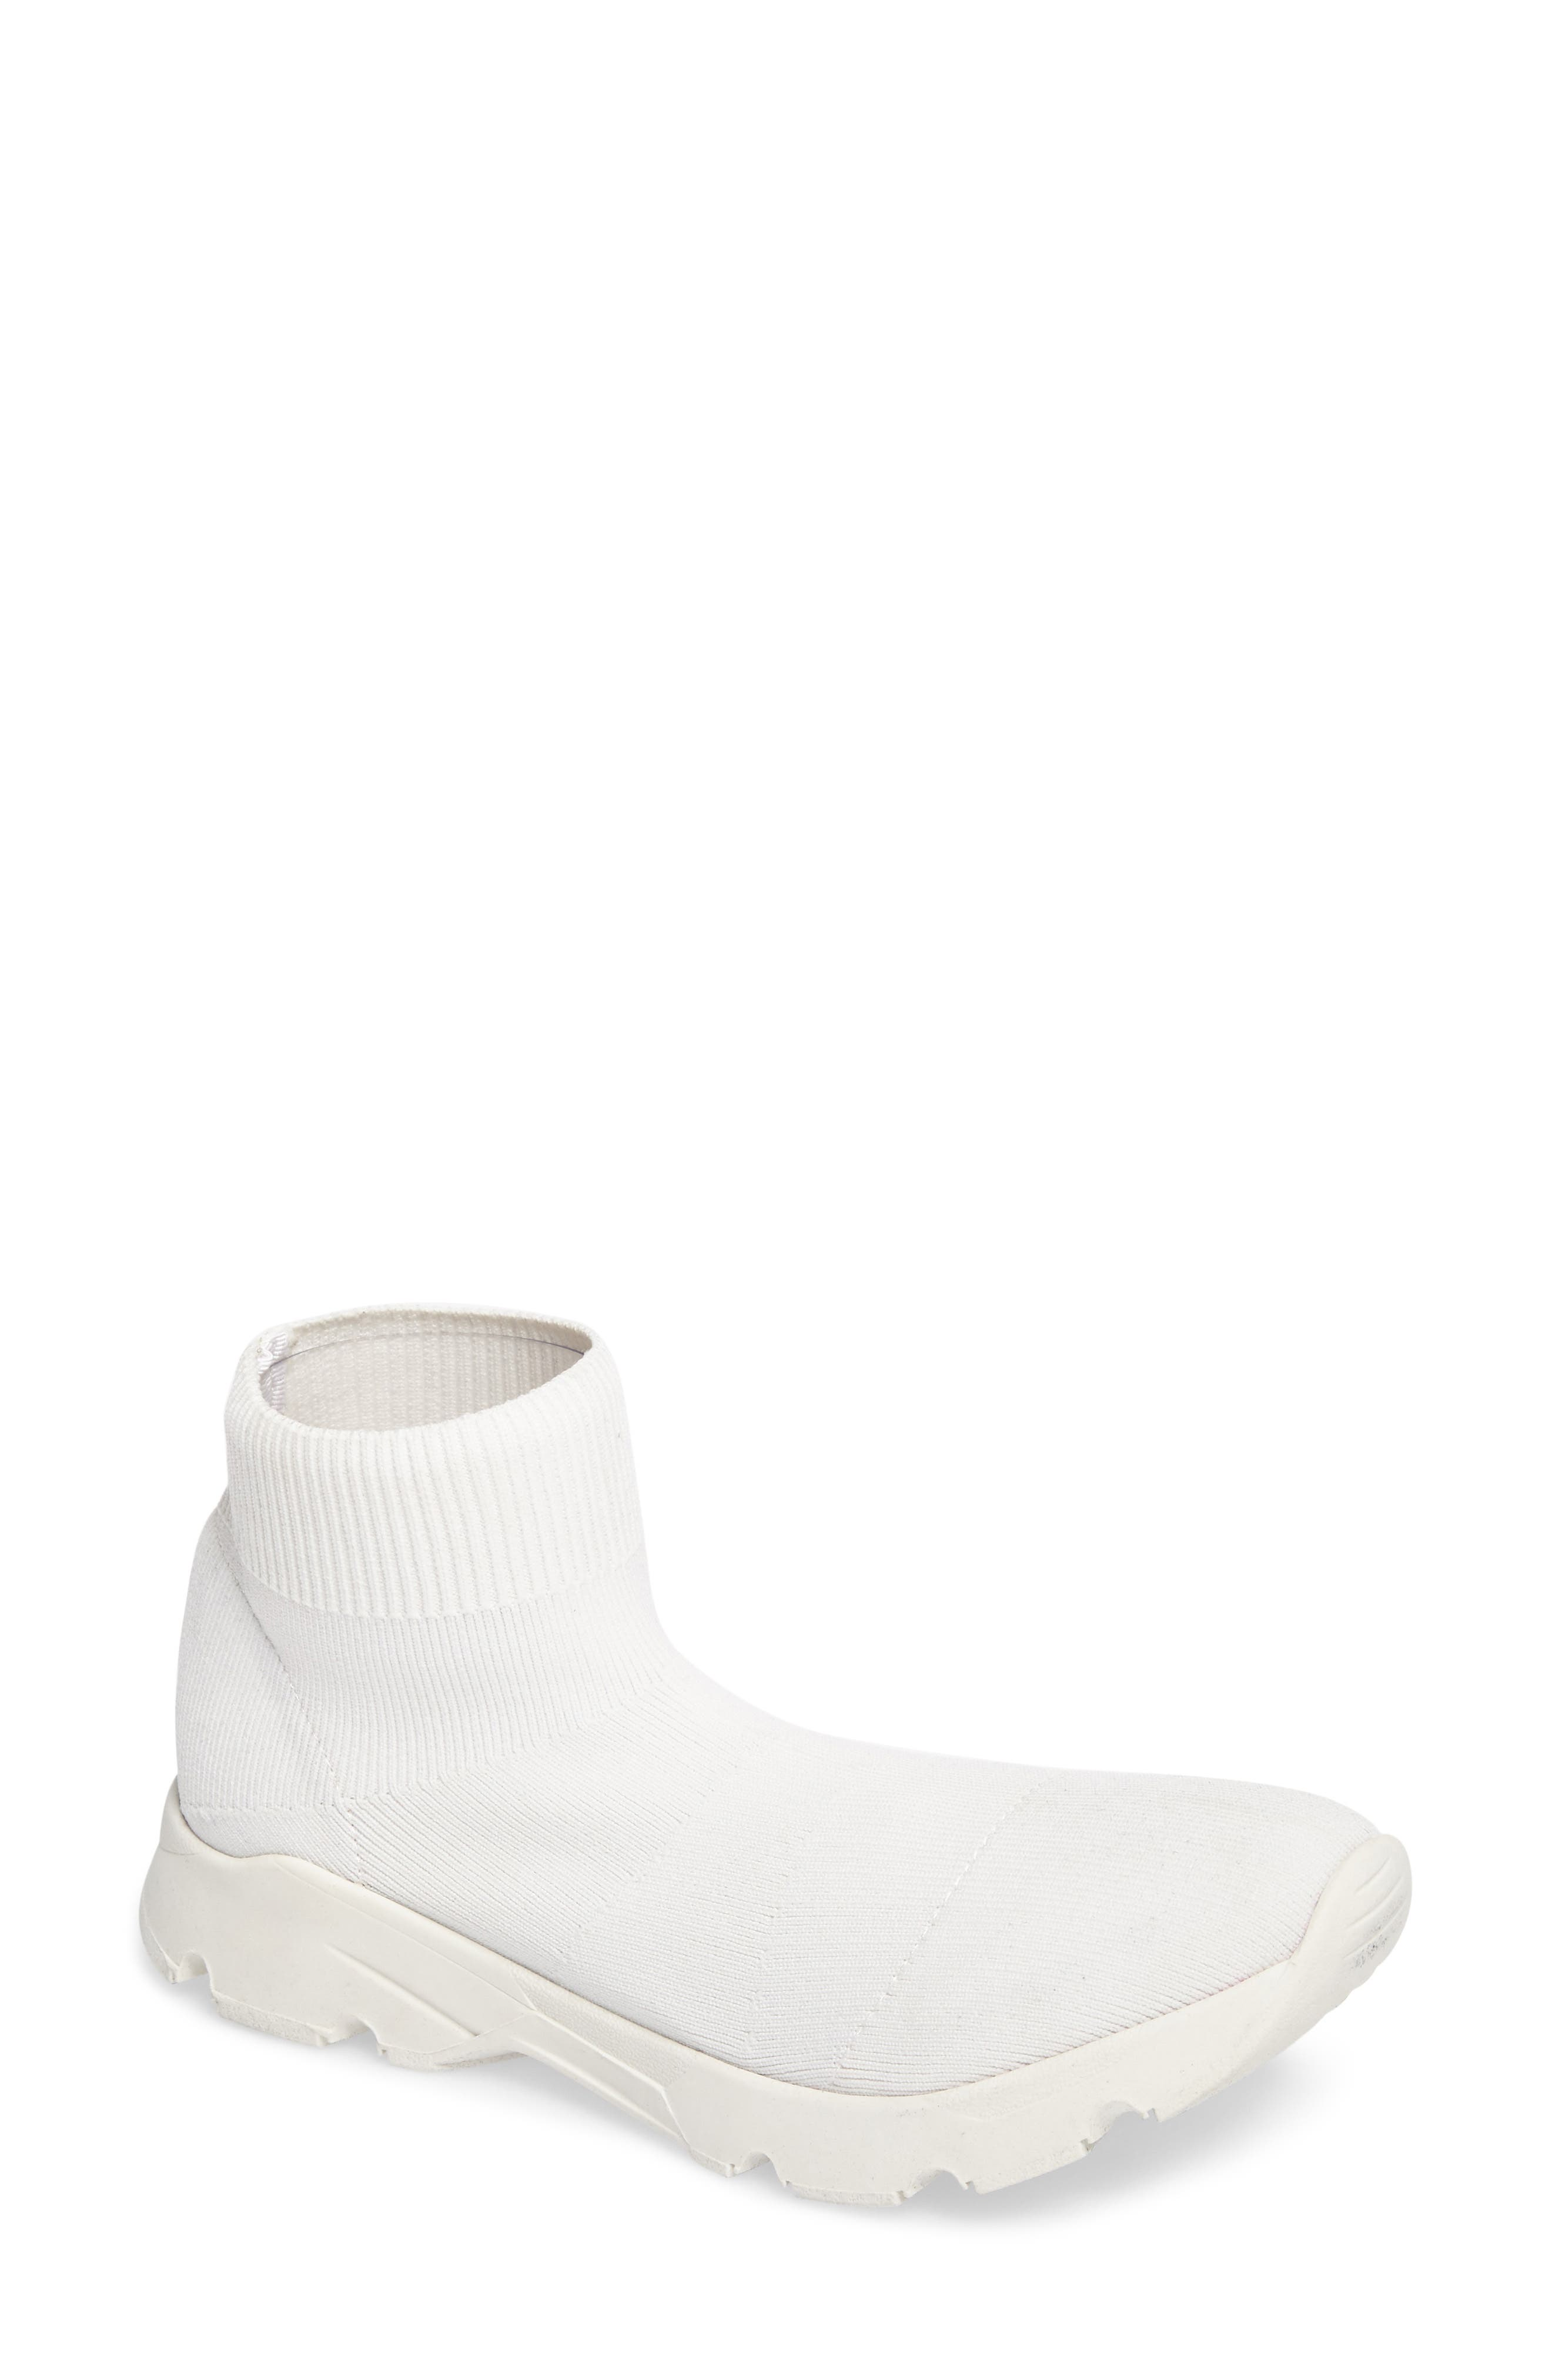 Winston Knit High Top Sneaker,                         Main,                         color, White Vortex